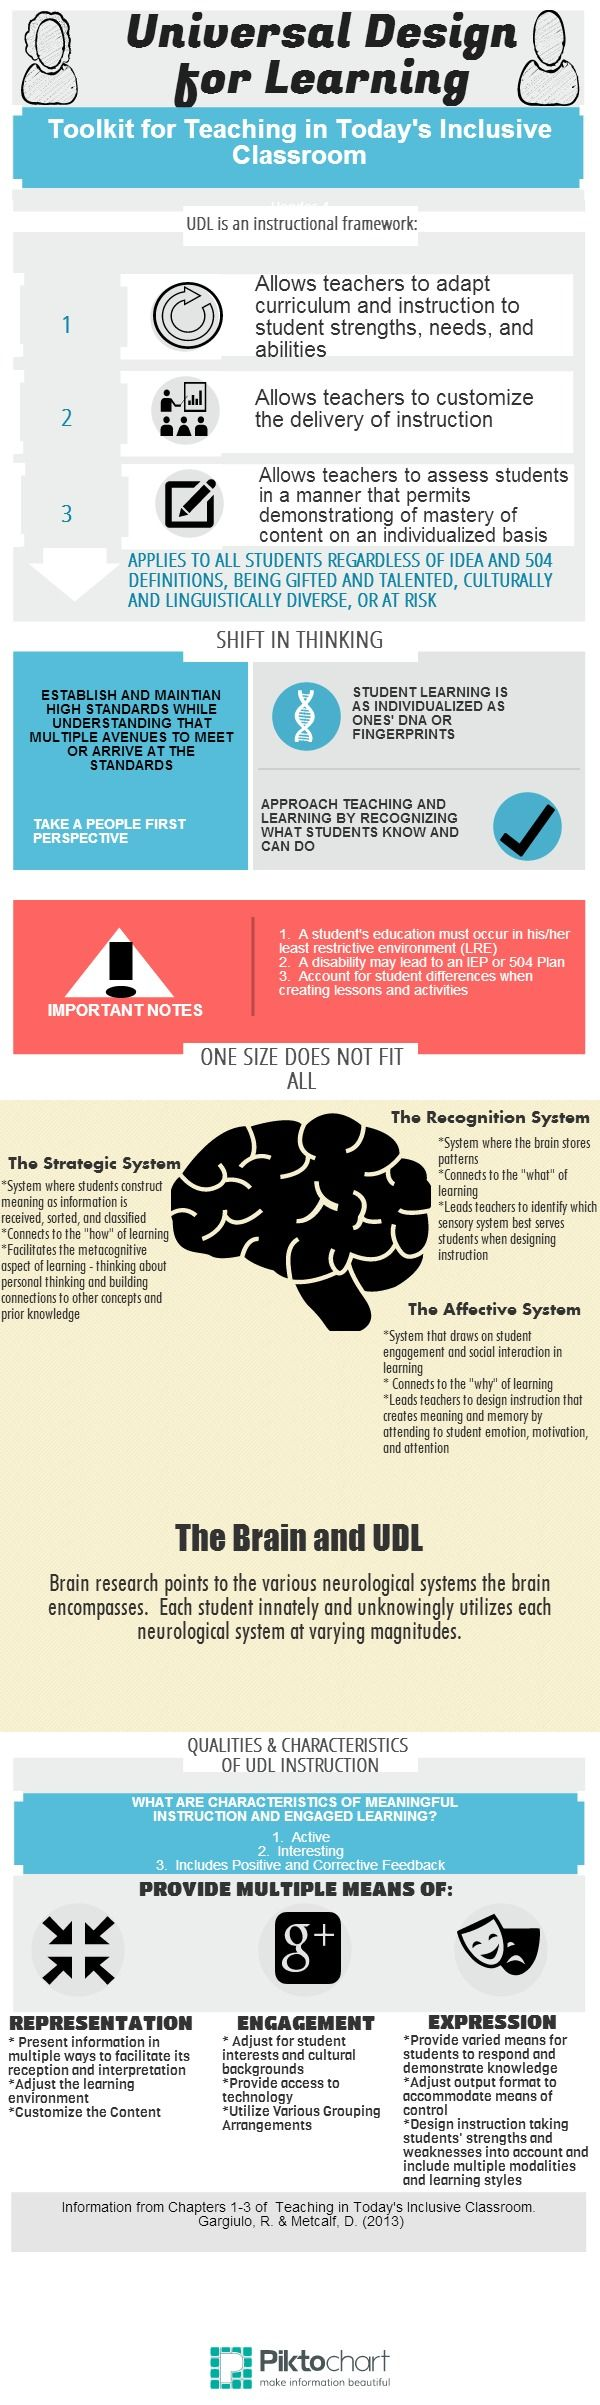 Universal Design for Learning (UDL) | #Infographic created in @Piktochart Editor